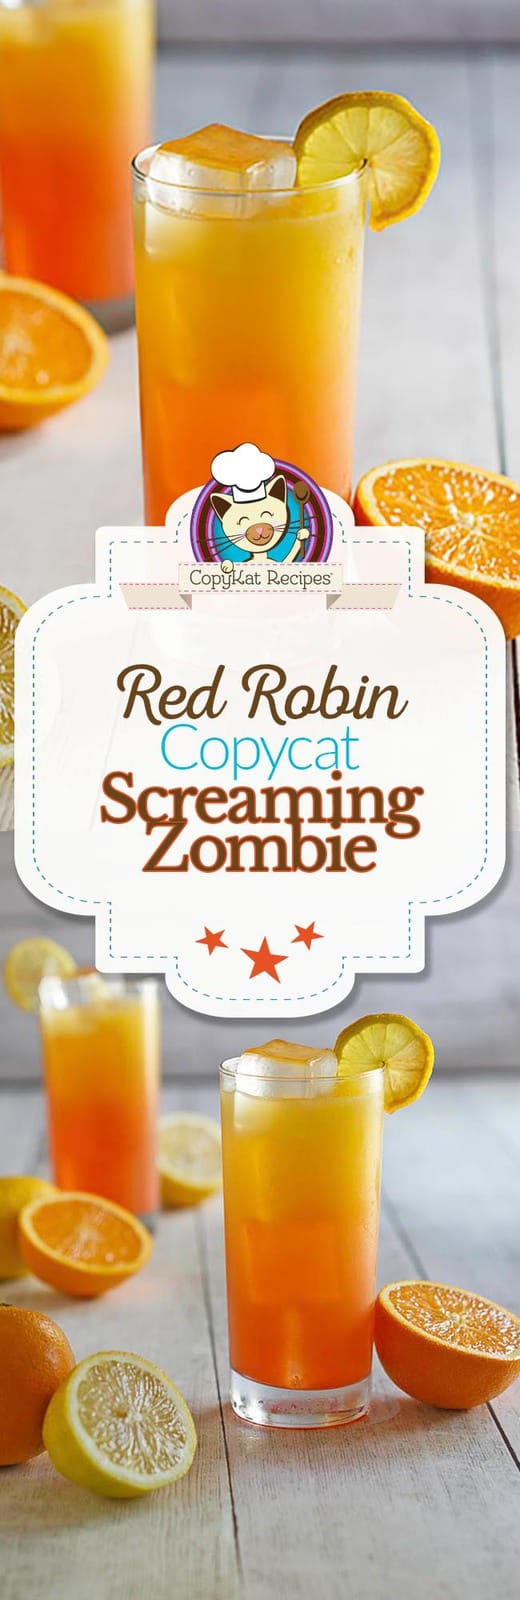 You can make this copycat recipe for the Red Robin Screaming Zombie drink at home with this easy recipe.